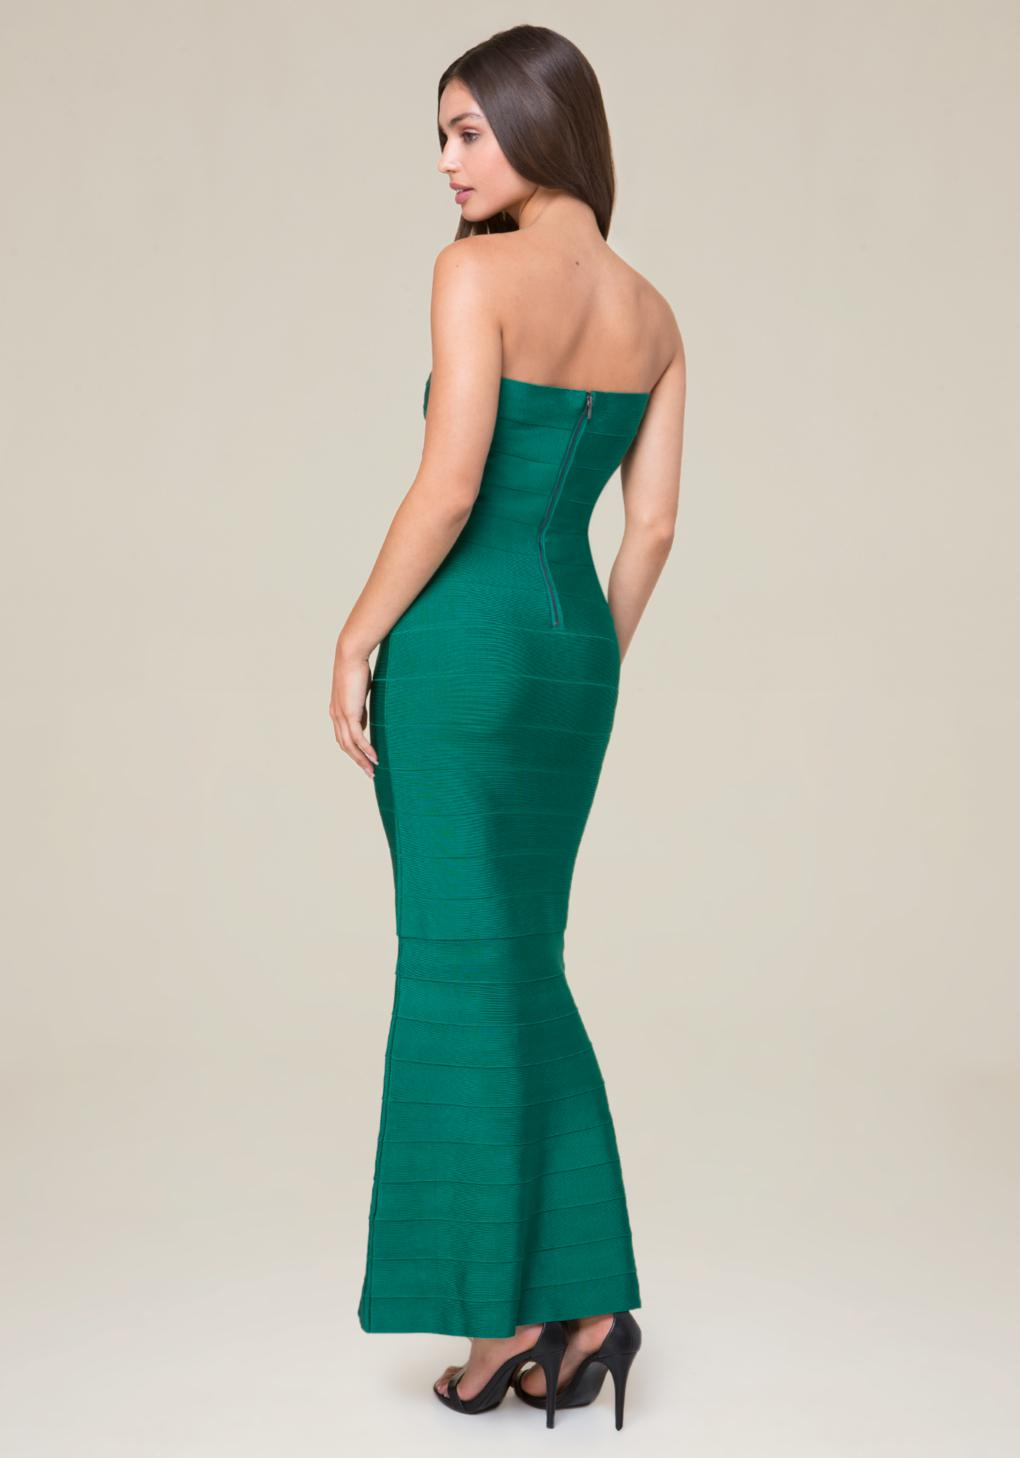 Lyst - Bebe Strapless Bandage Gown in Green